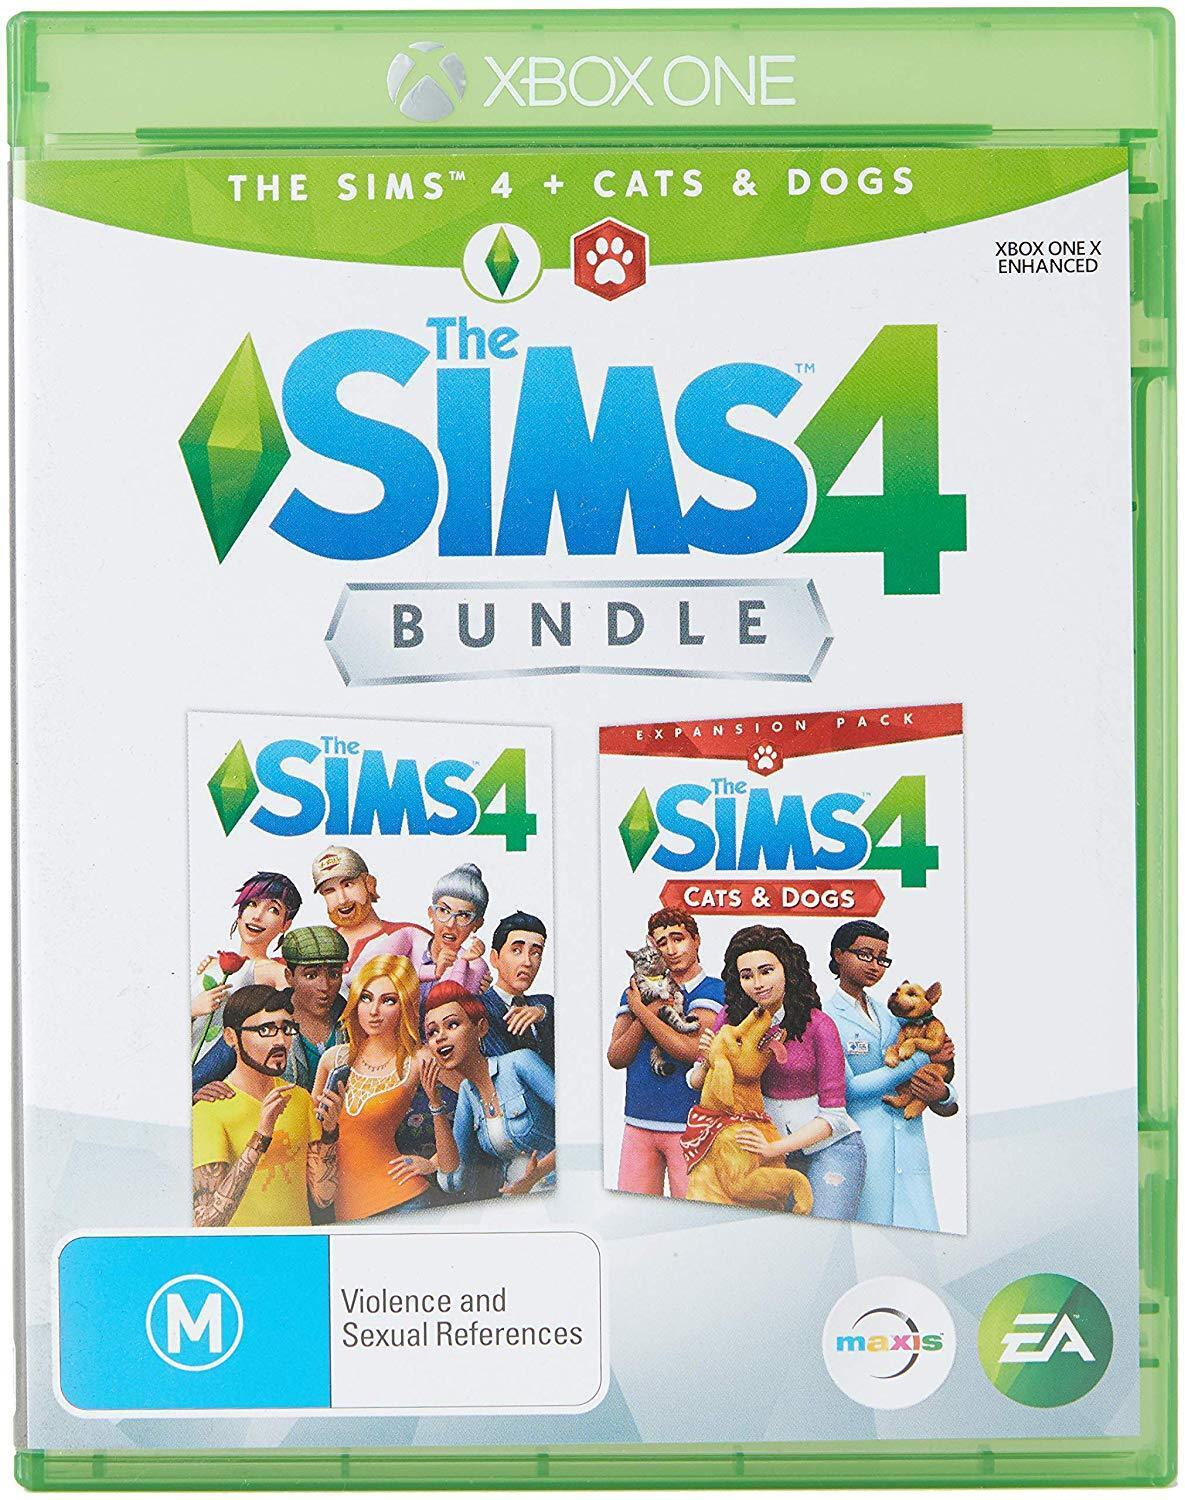 Details about The Sims 4 + Cats & Dogs Bundle Virtual World Sim Game  Microsoft XBOX One XB1